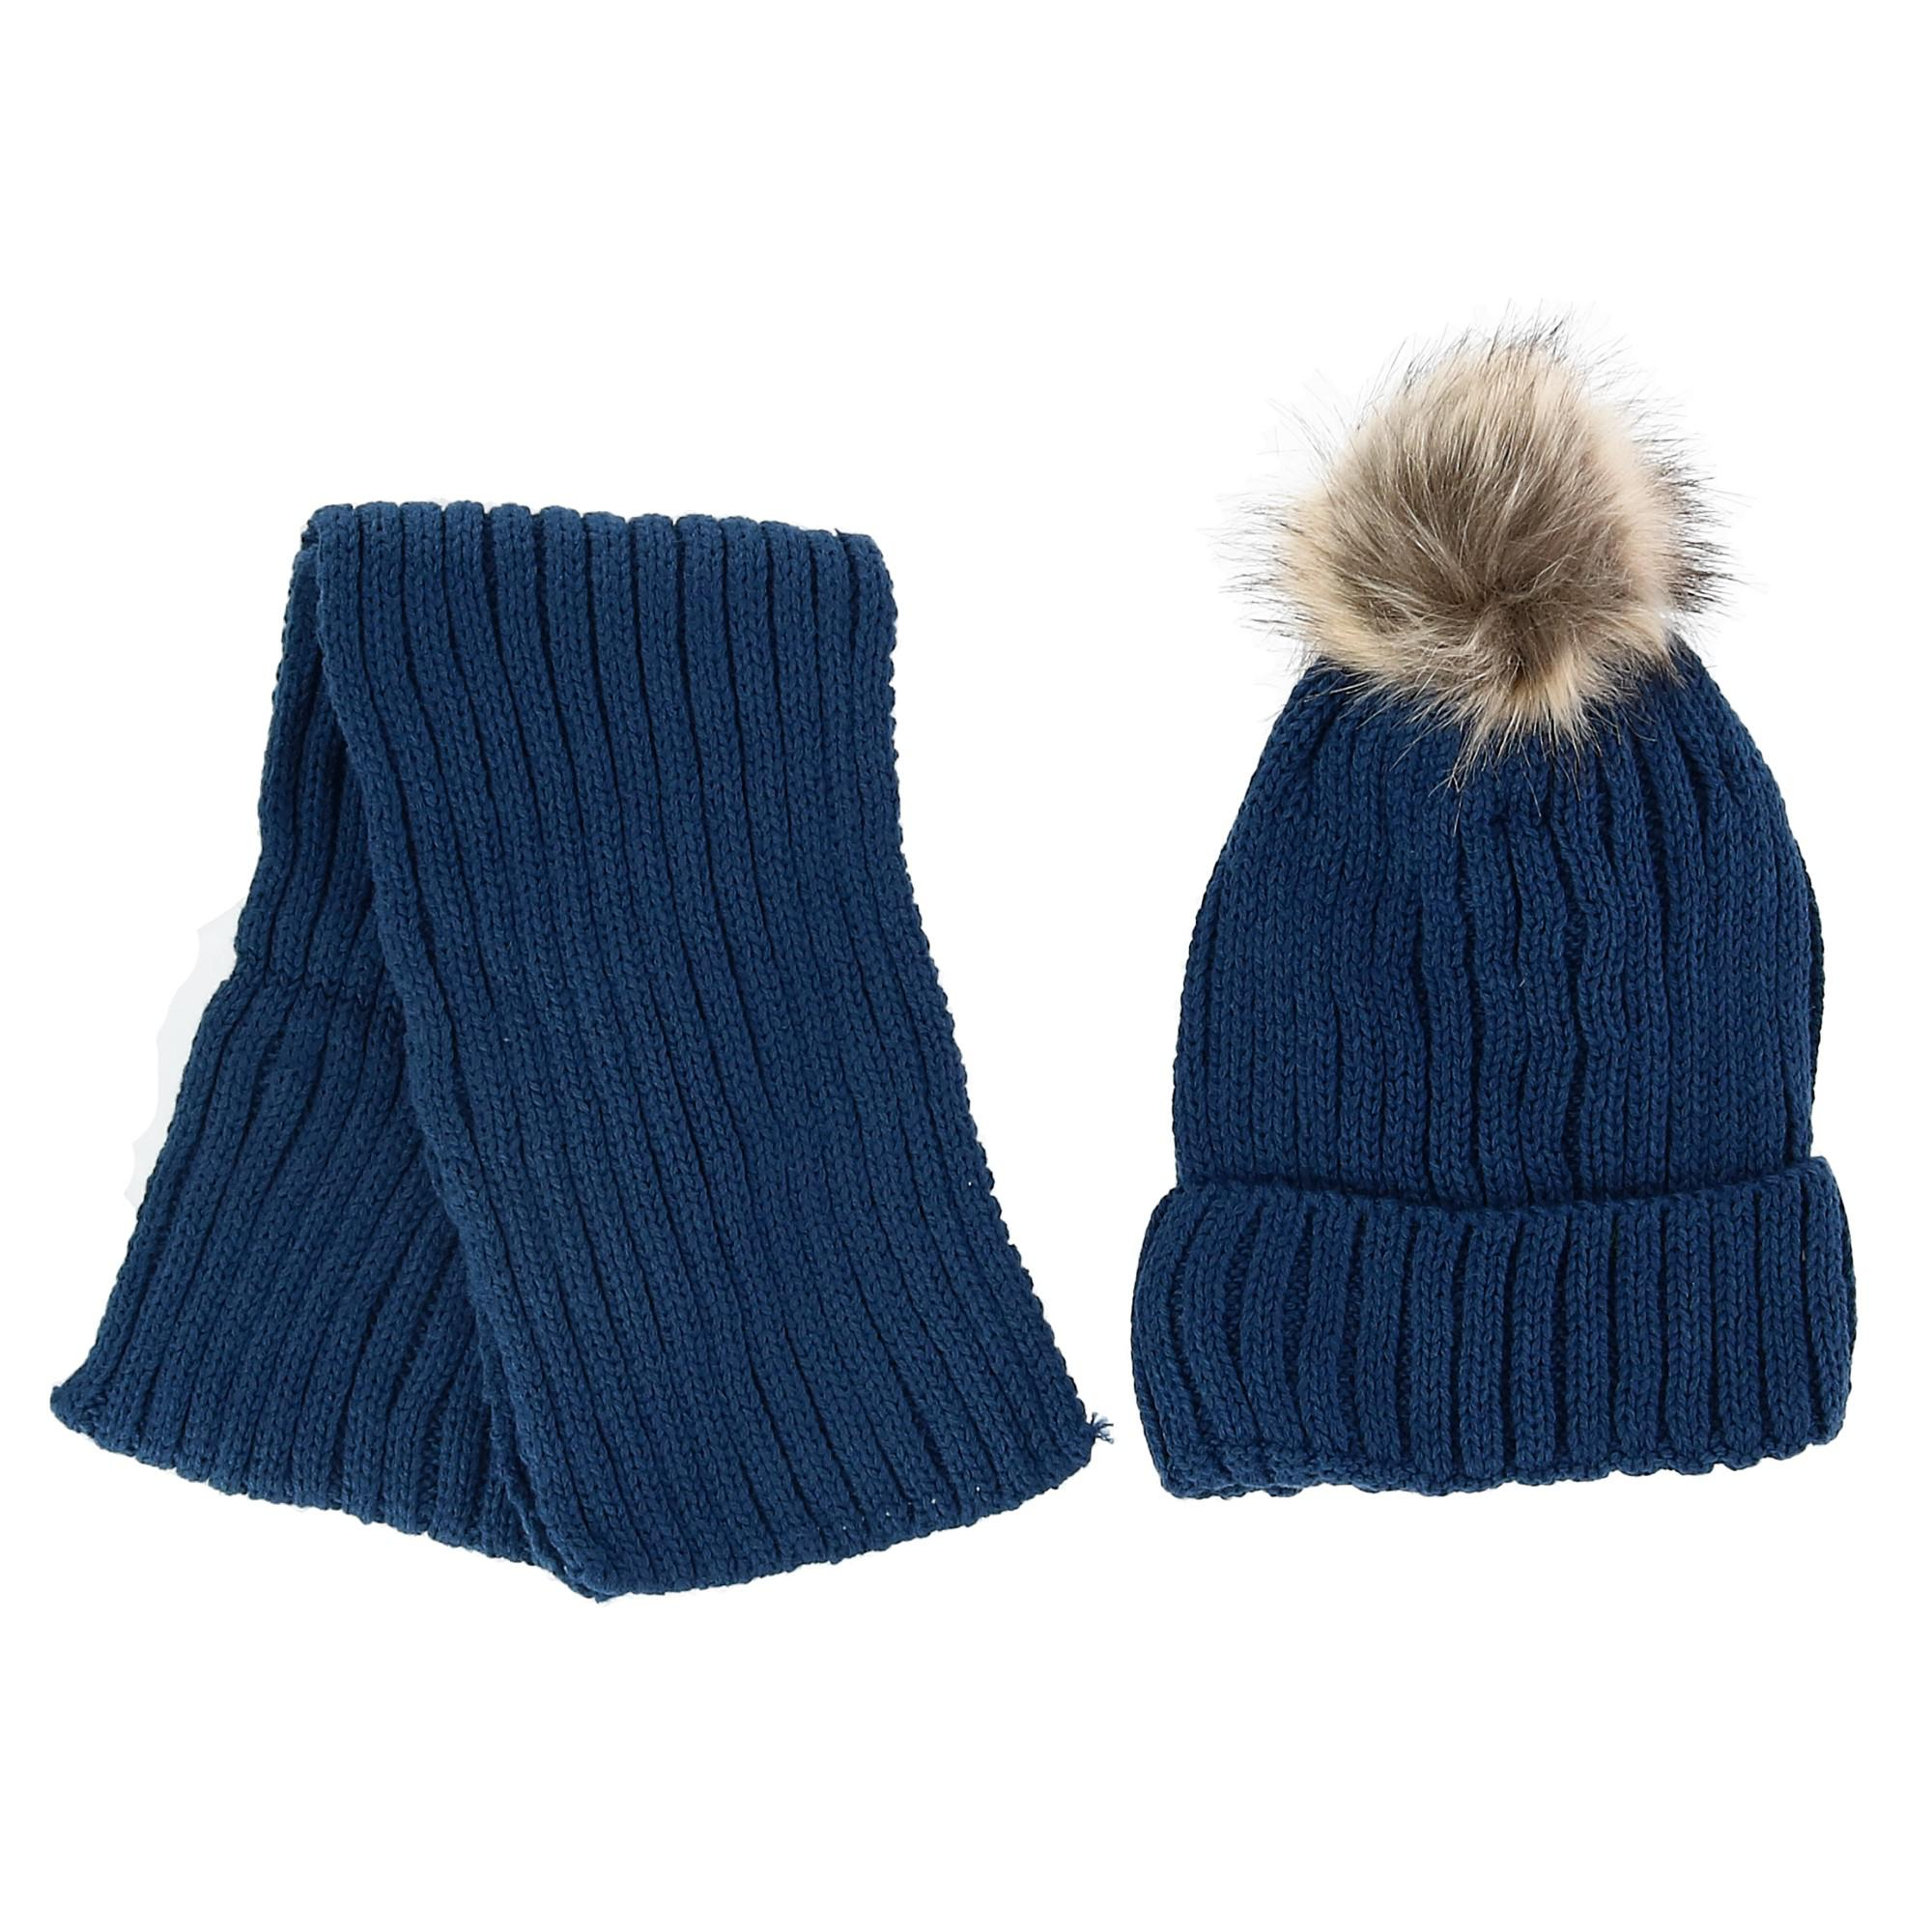 Foemo Kids' Ribbed Knit Winter Hat and